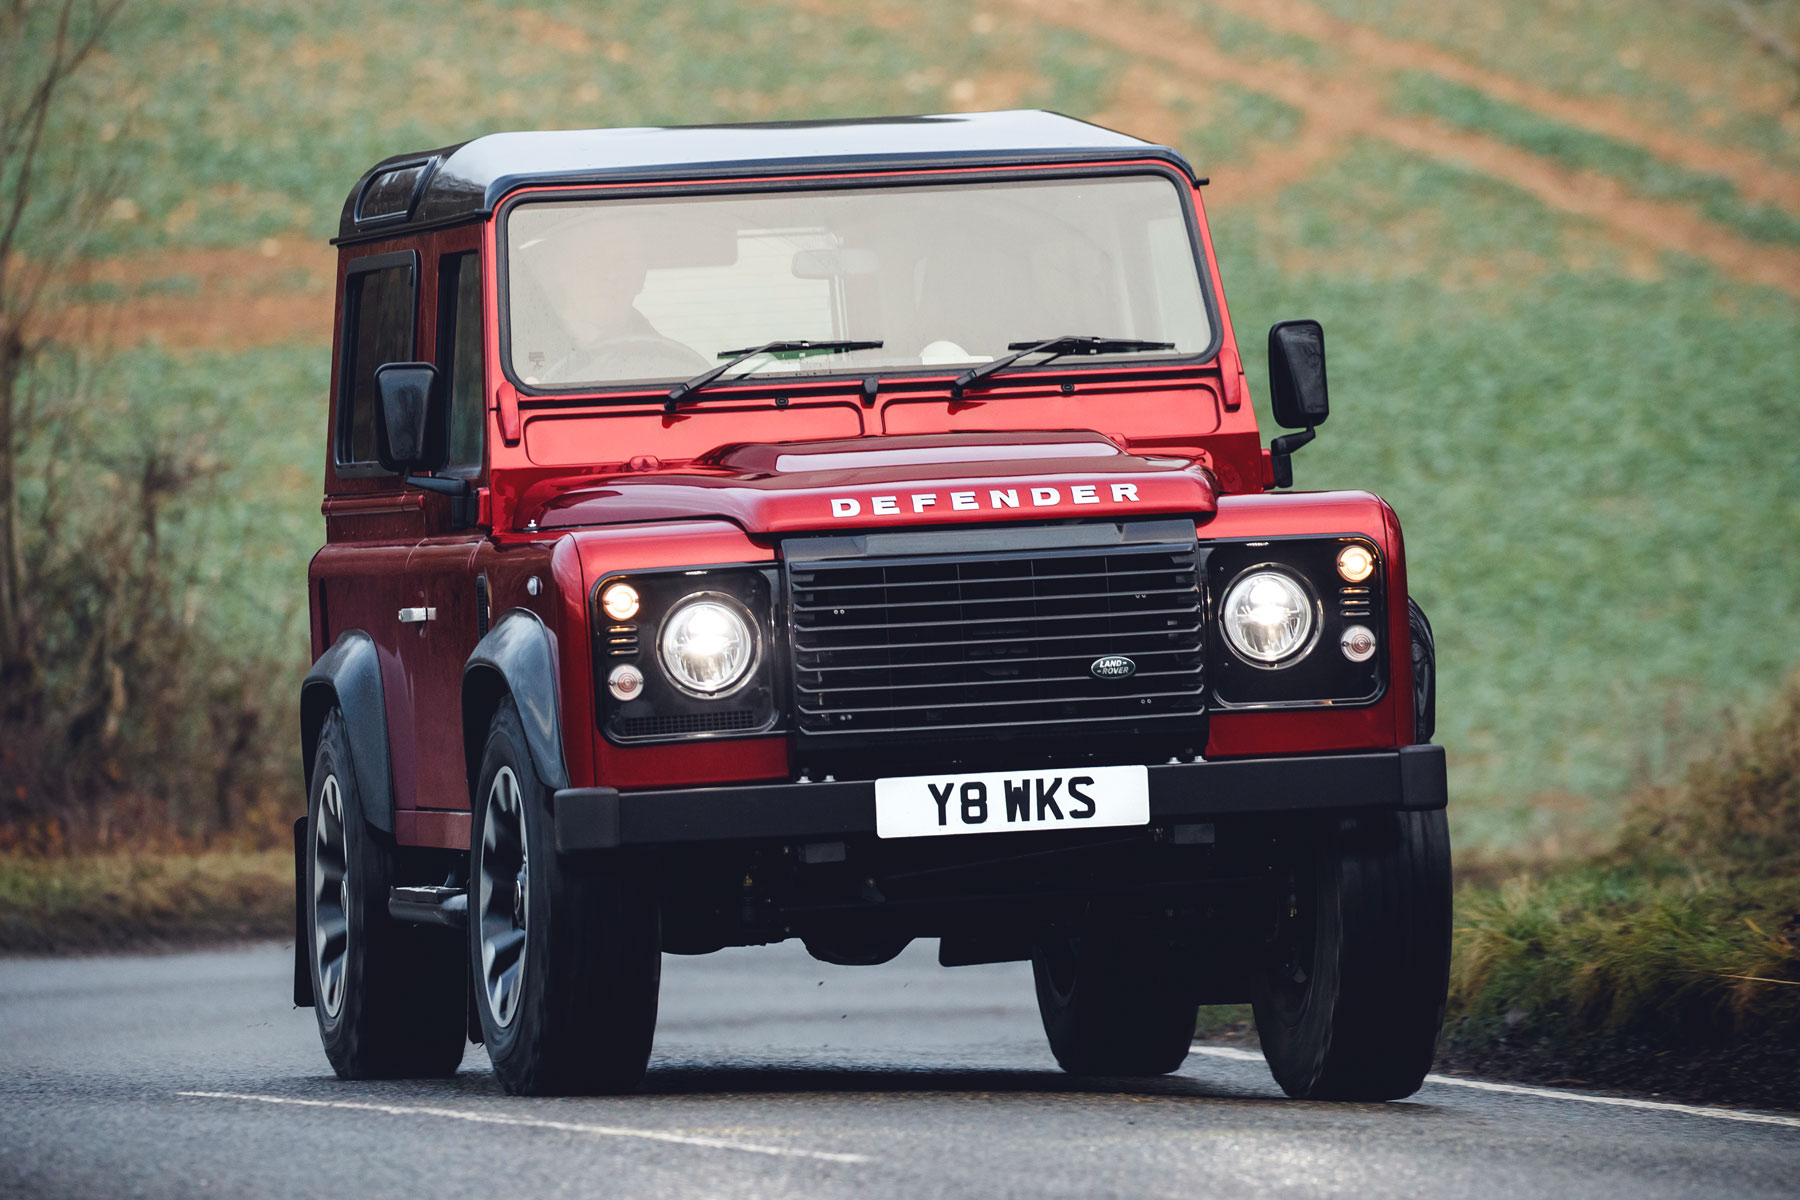 cars trans nation and defender landrover land enthusiast cost old new the to save wants rover xlarge millionth for news